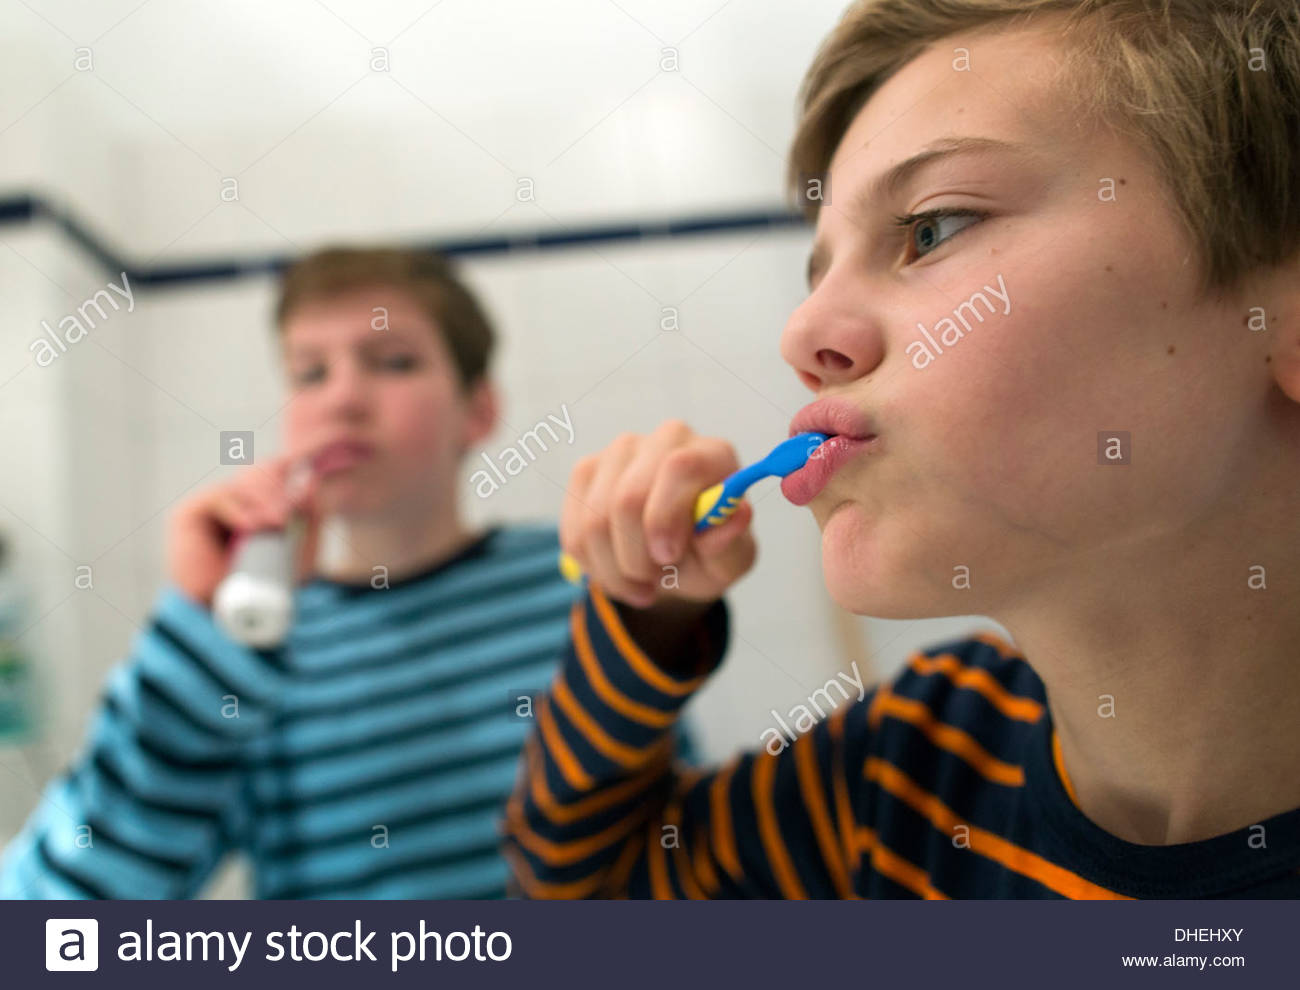 Boys cleaning teeth's - Stock Image